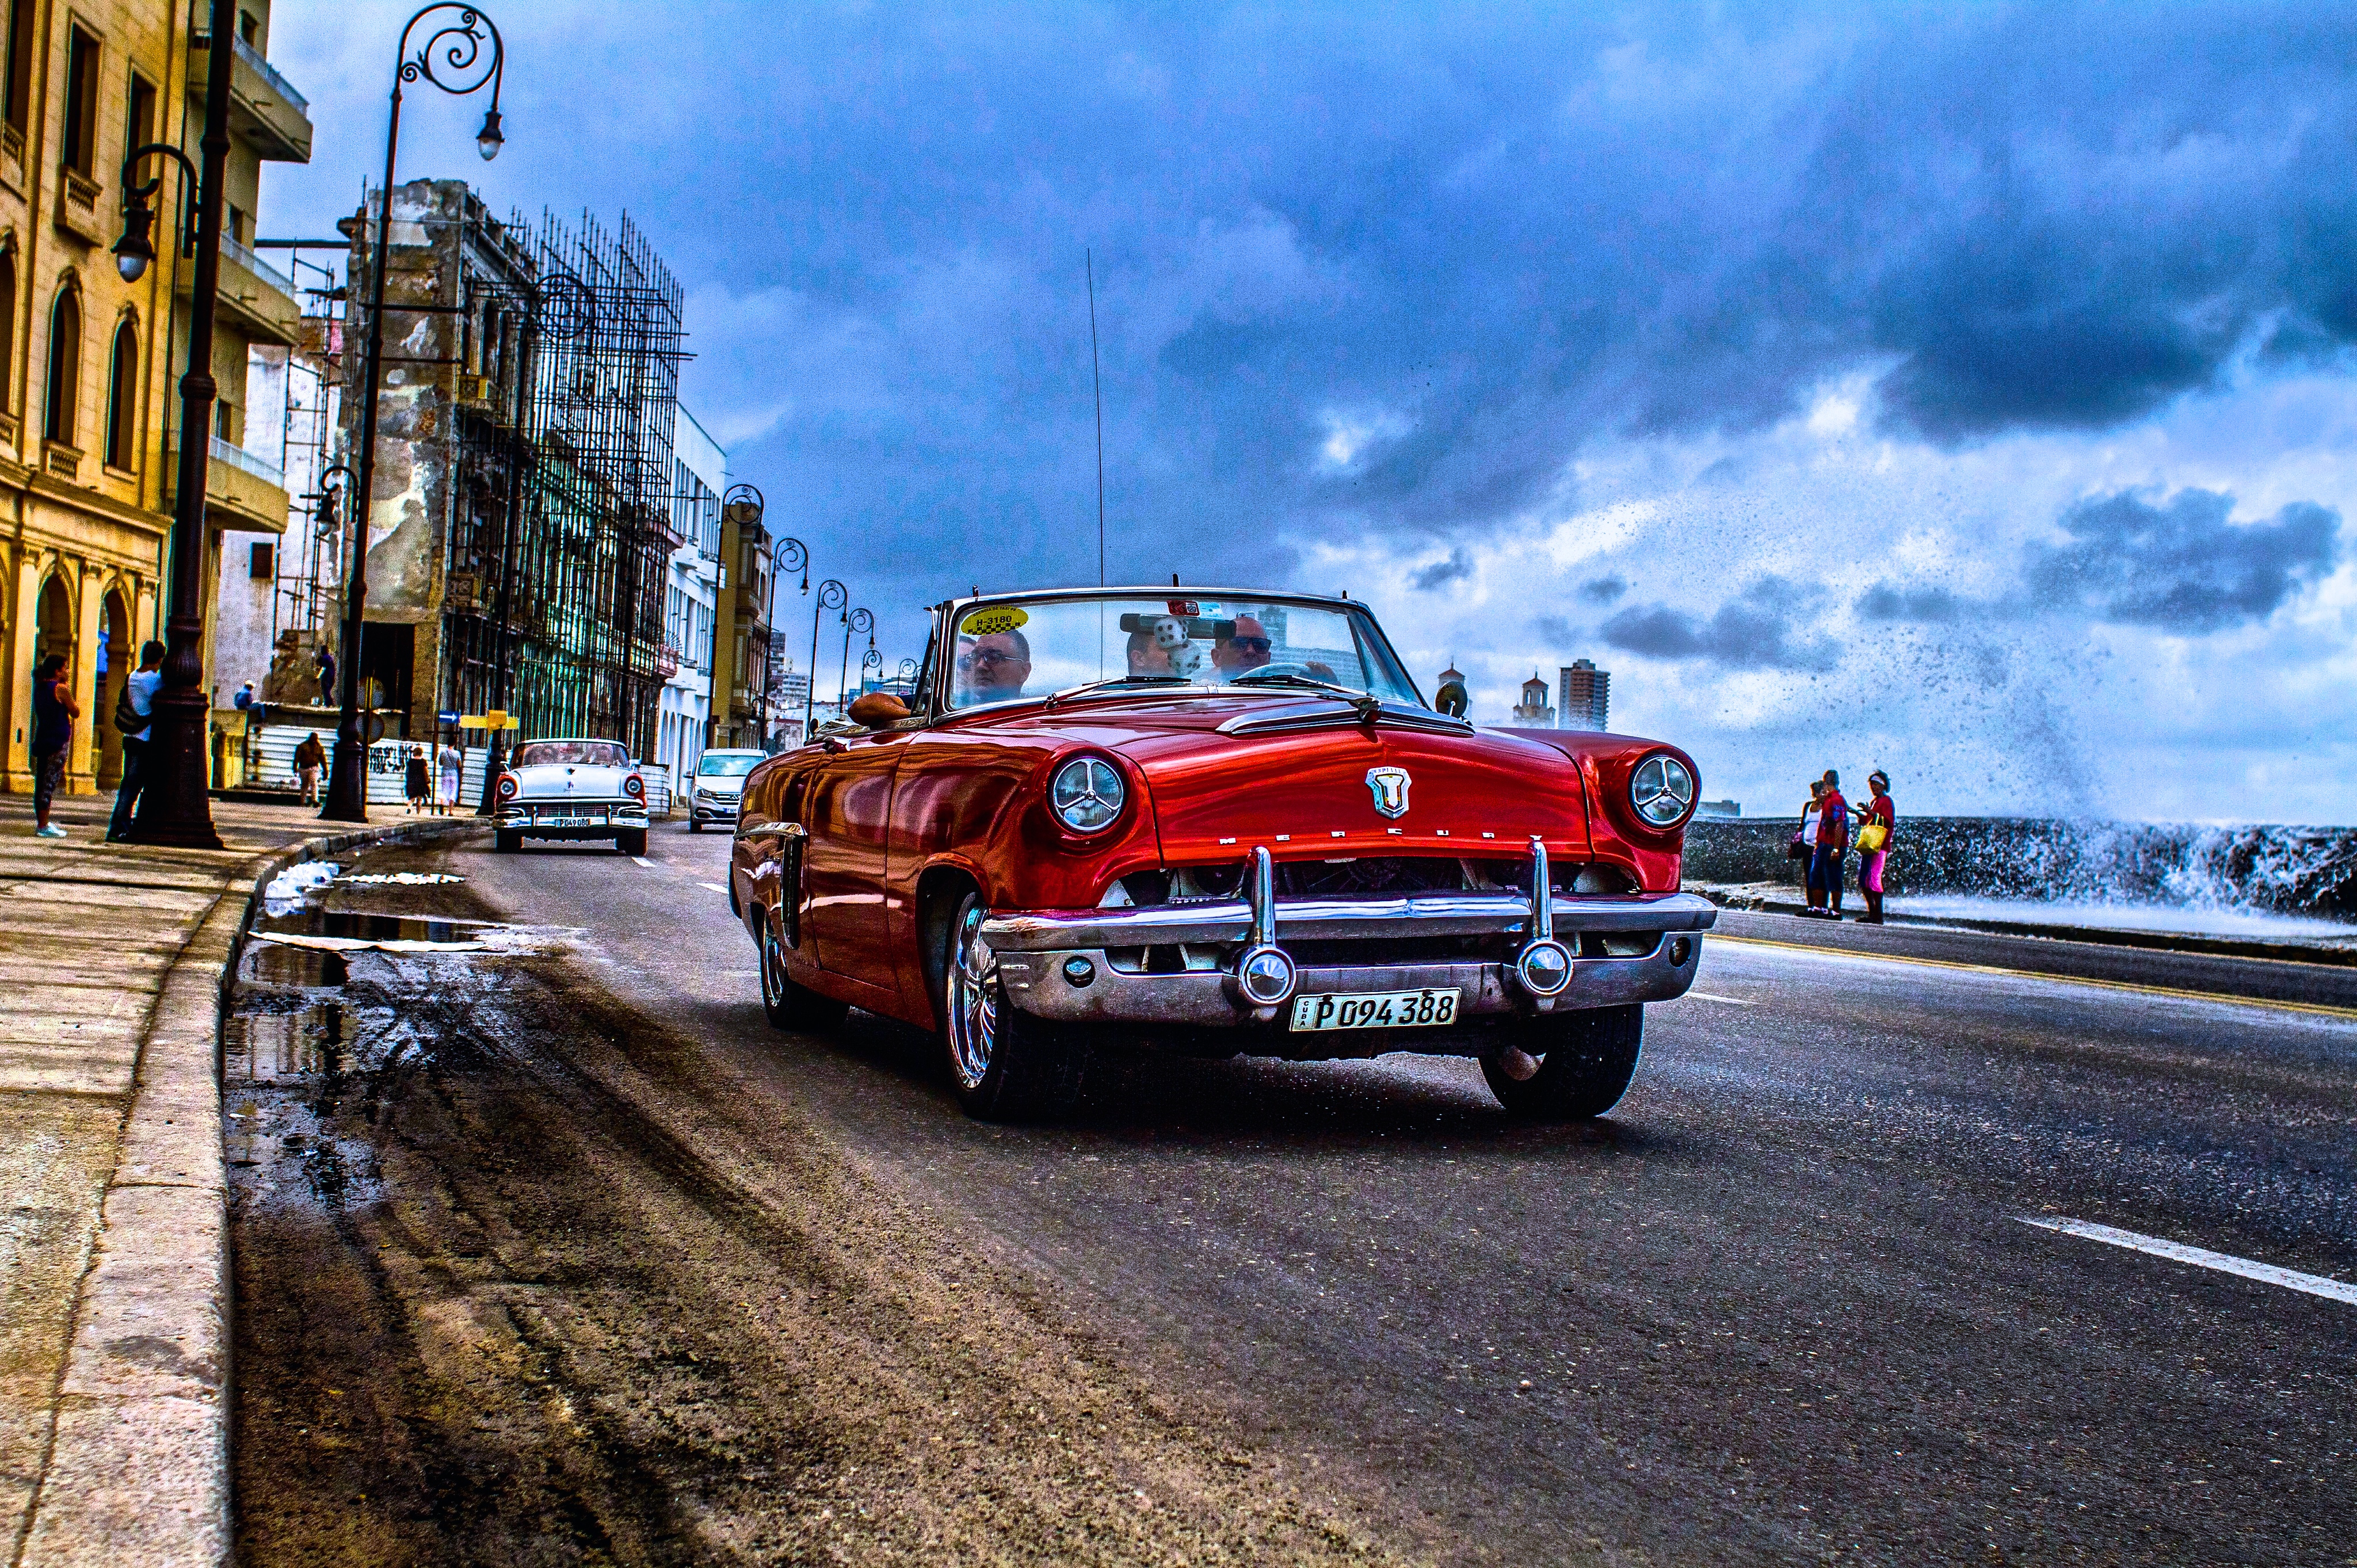 cuba stopped importing cars for many years after the revolution these